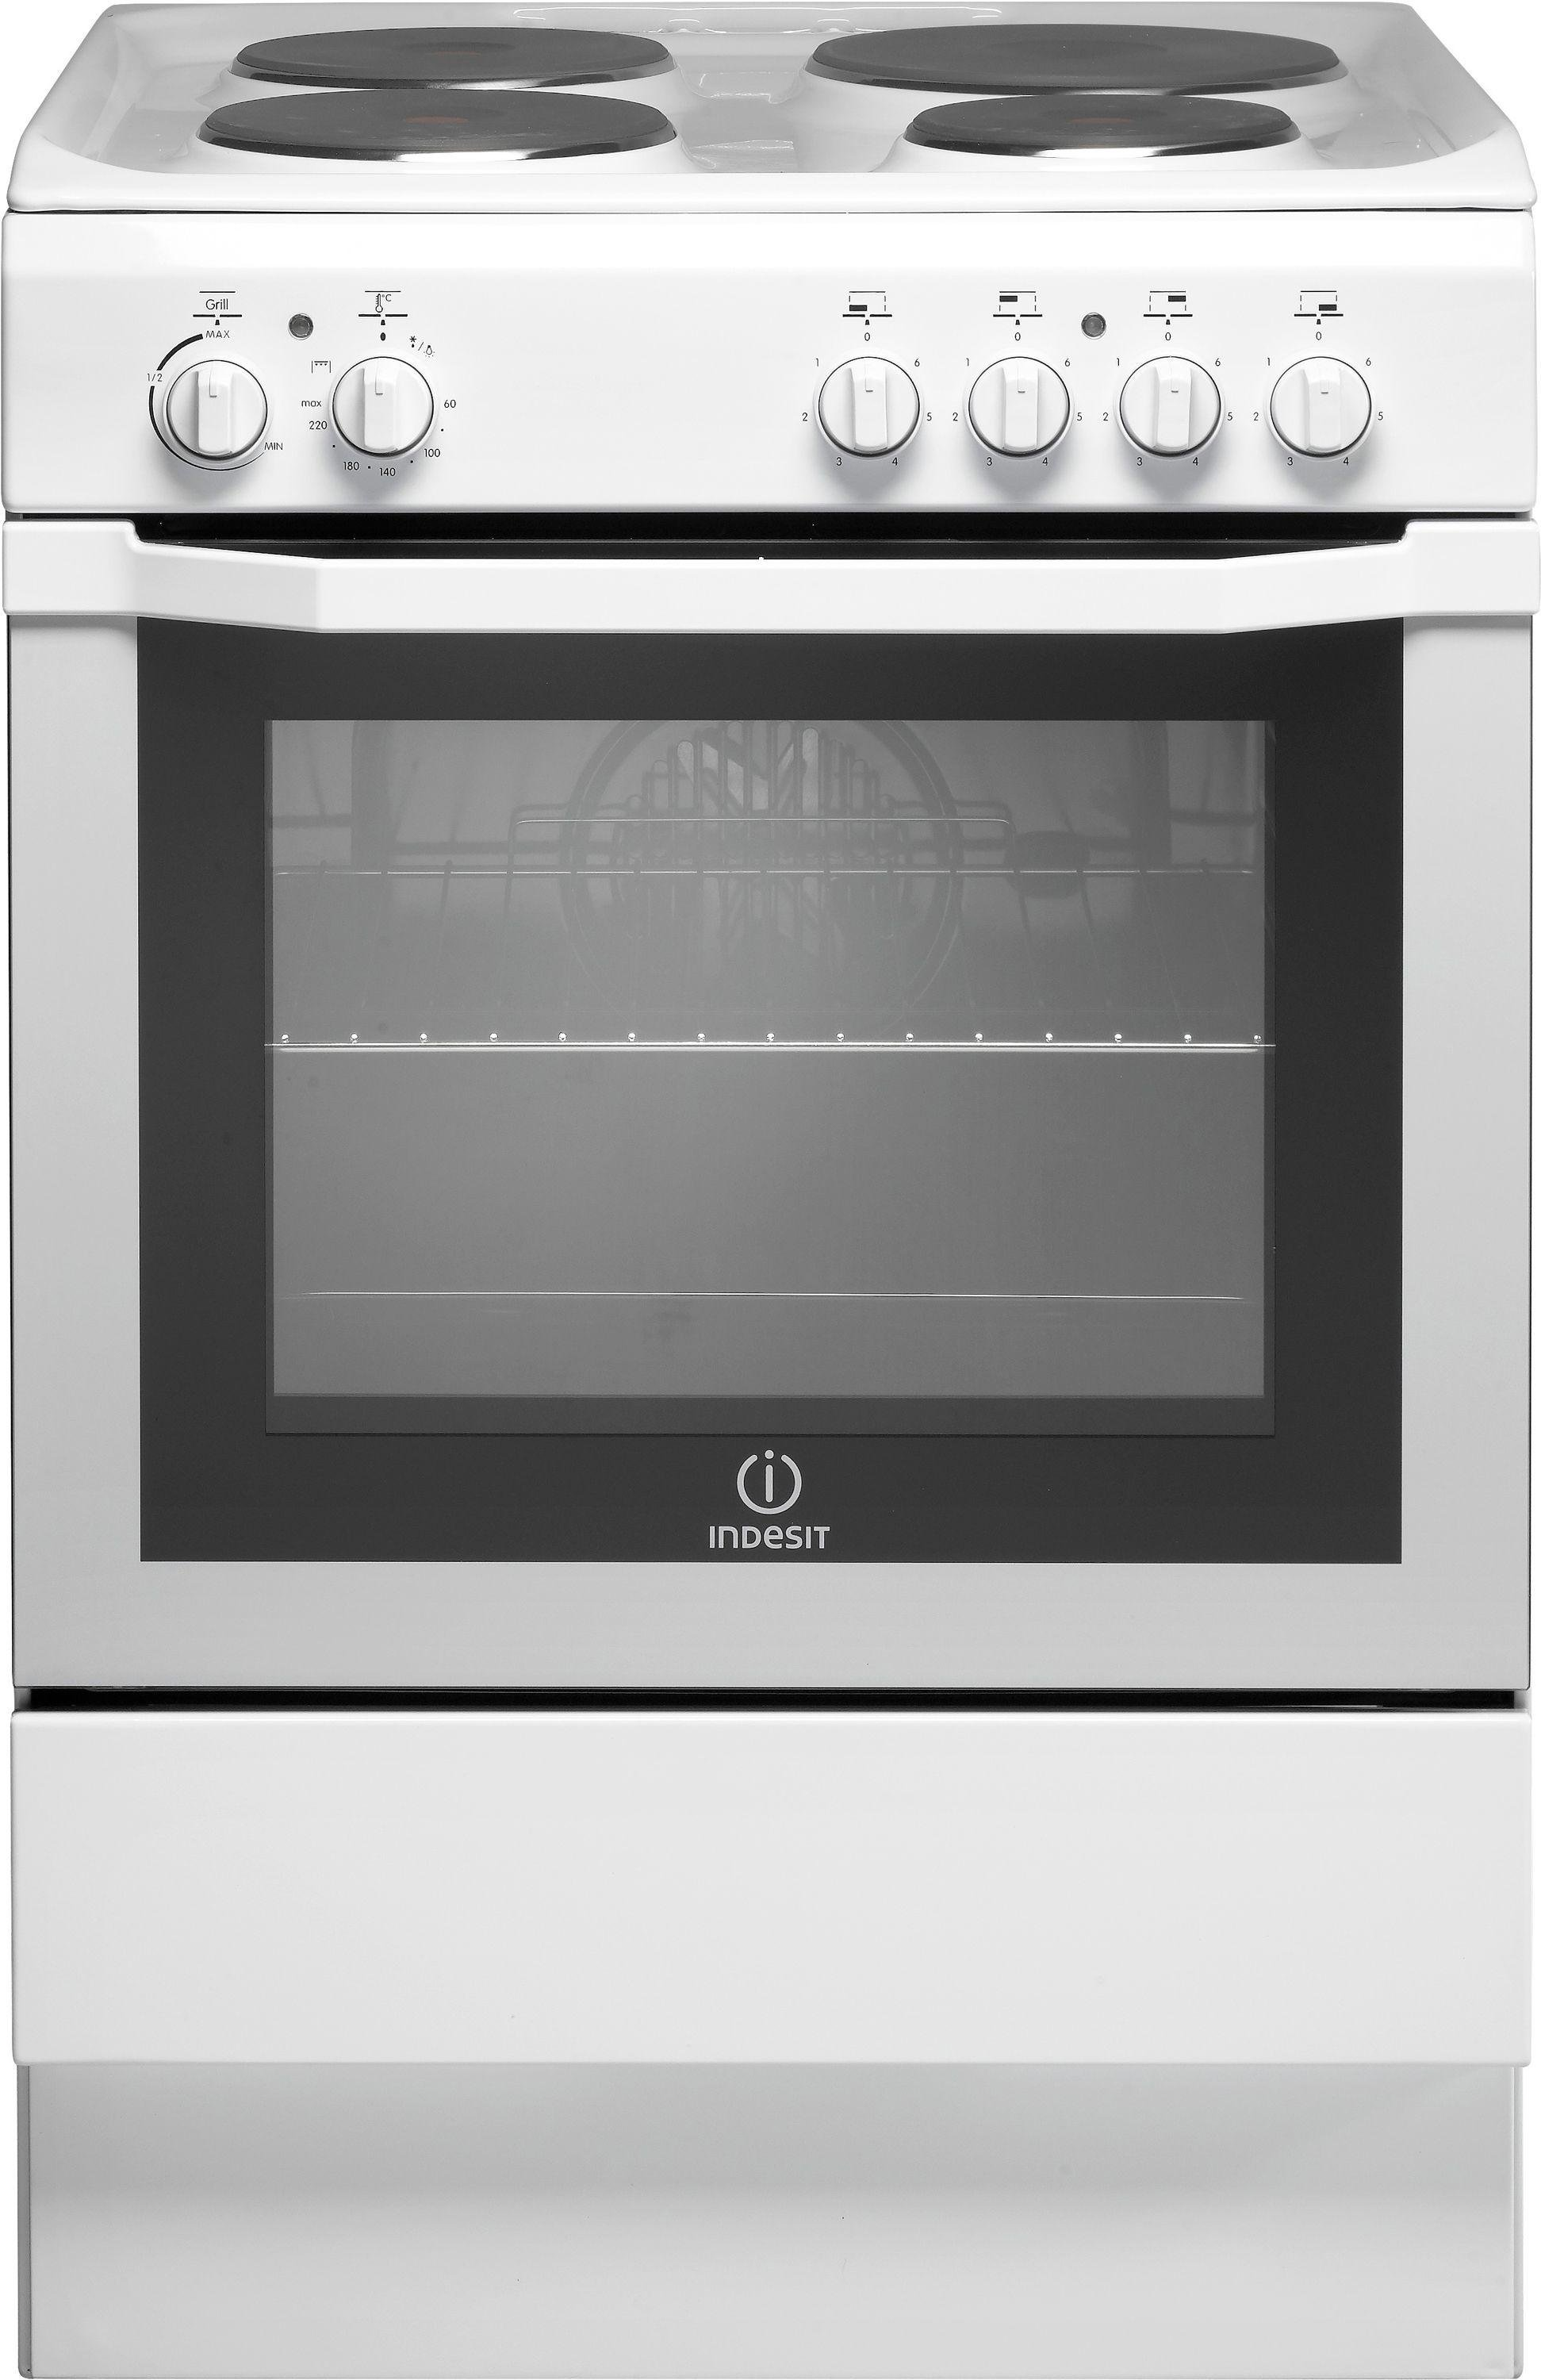 Indesit I6EVAW/ Freestanding Cooker - White Best Price, Cheapest Prices